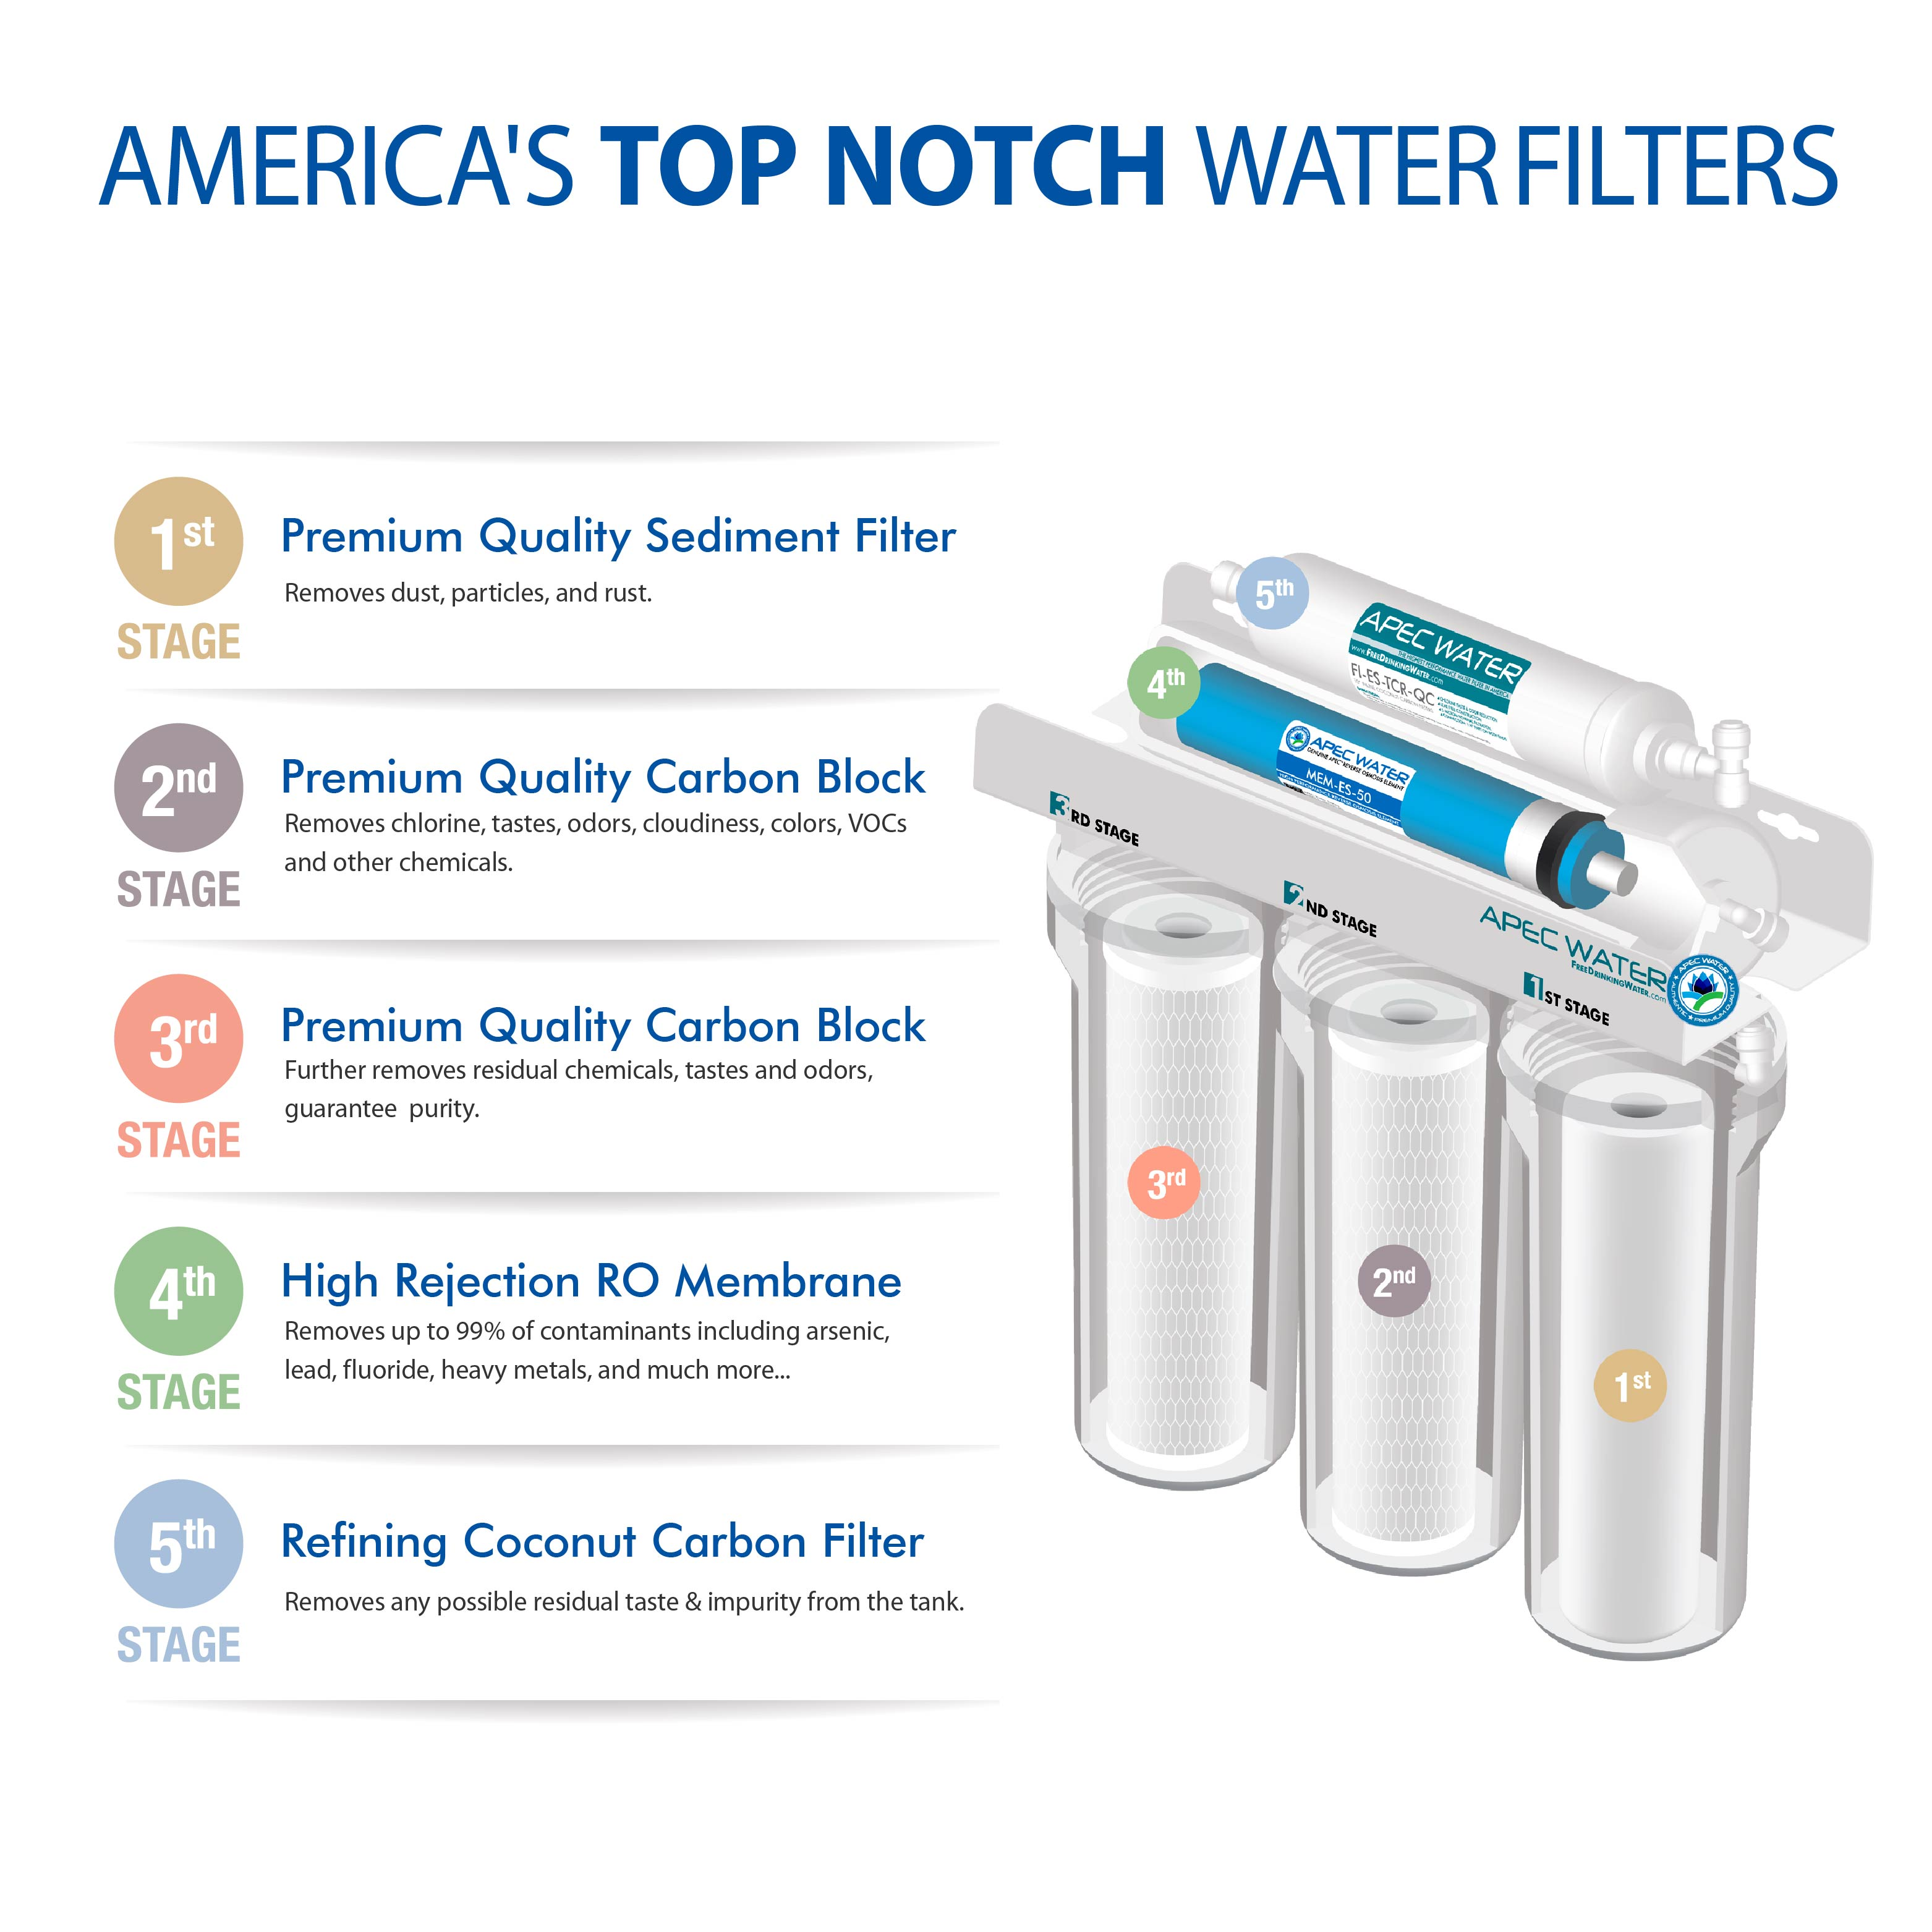 b6dbf2609c2 APEC Ultra Safe Reverse Osmosis Drinking Water Filter System (ESSENCE ROES- 50) - Walmart.com